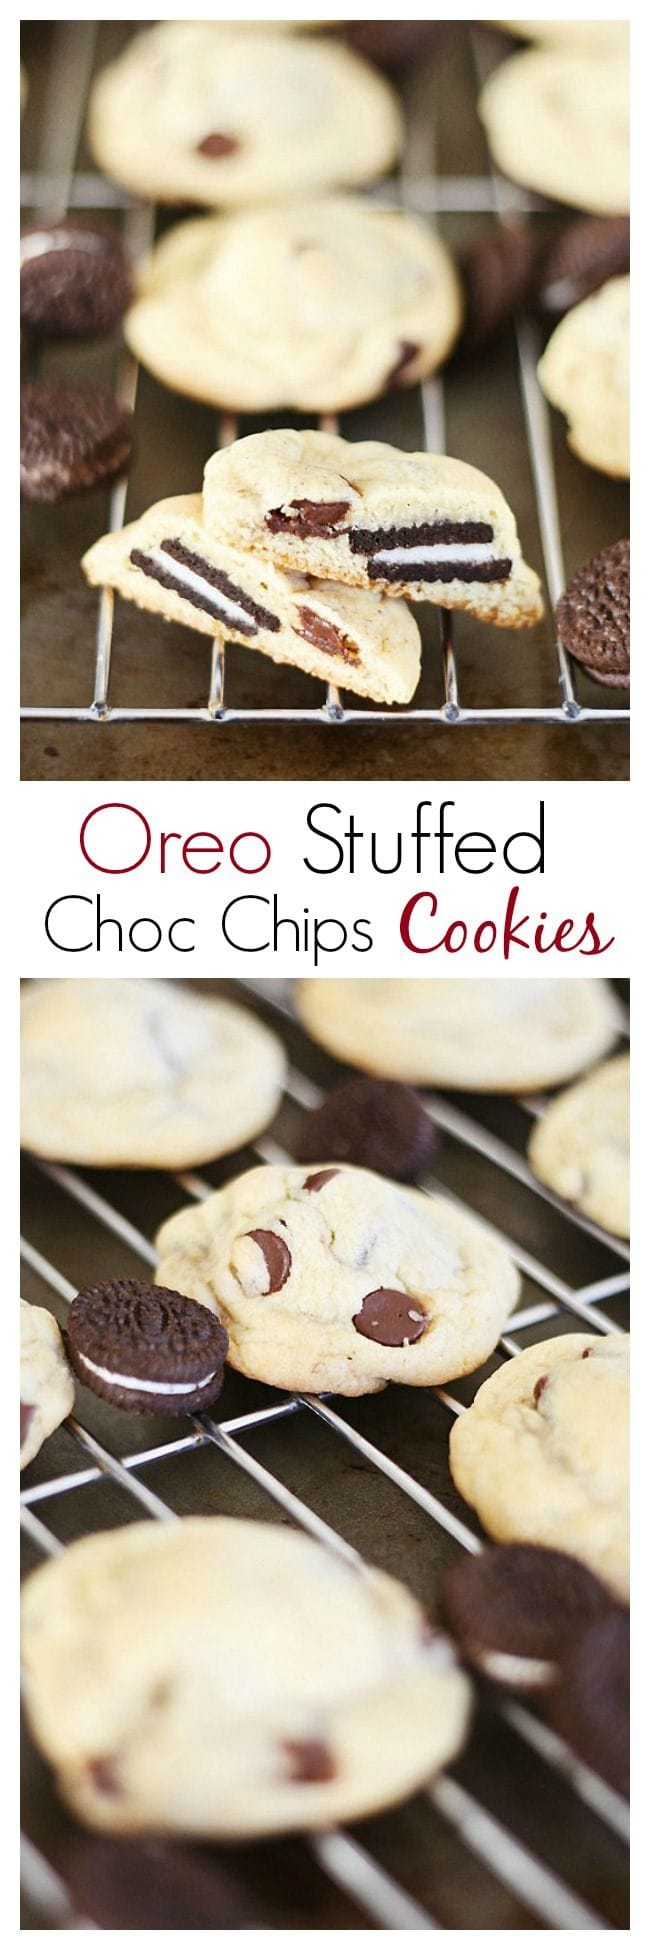 Oreo Stuffed Chocolate Chip Cookies | Easy Delicious Recipes